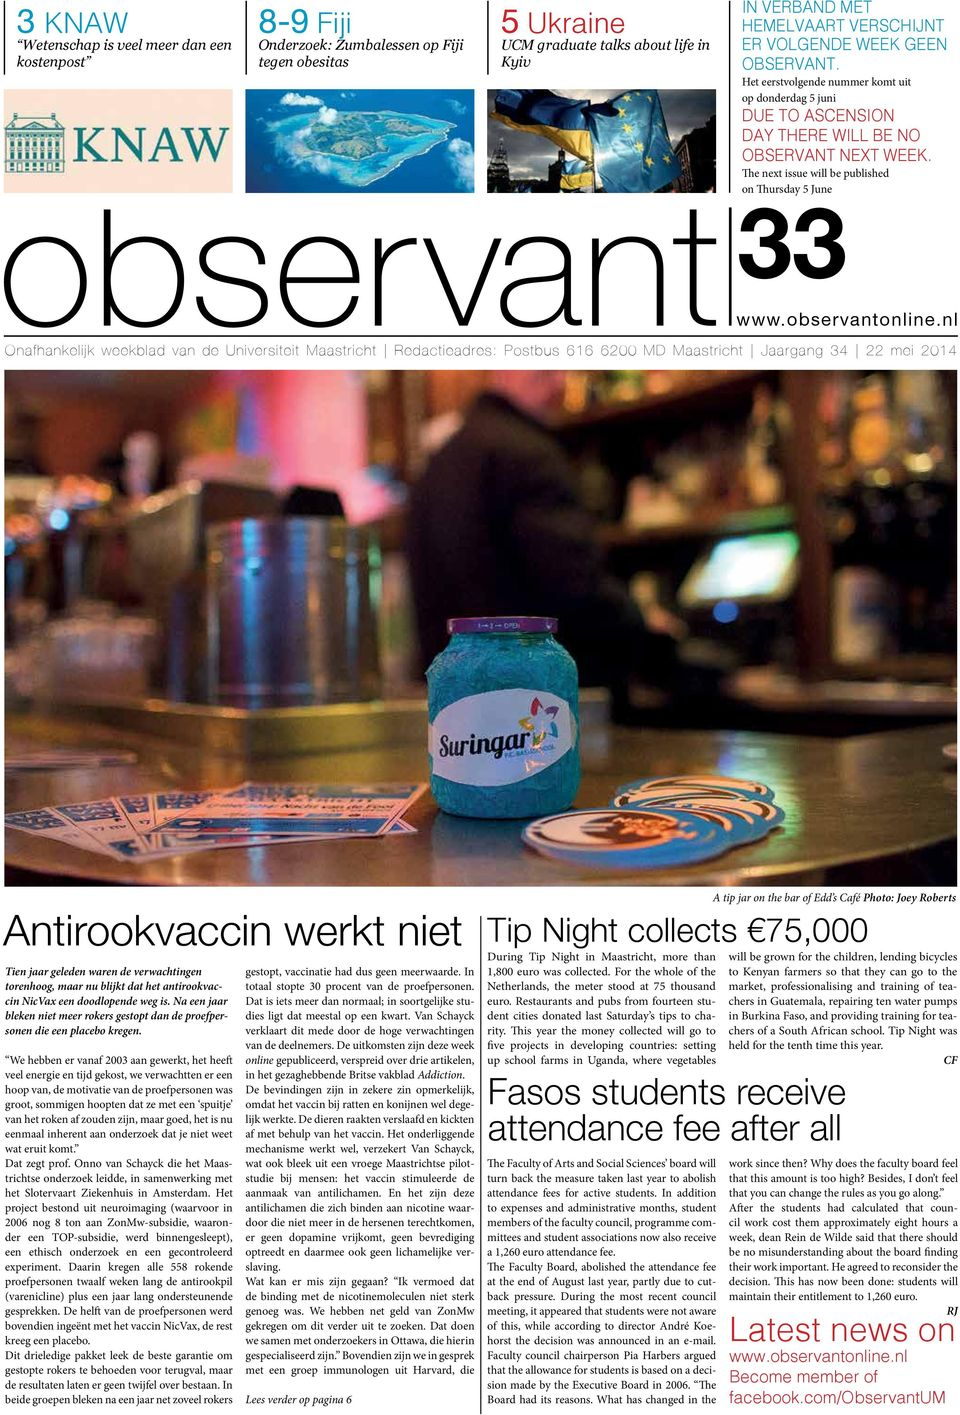 The next issue will be published on Thursday 5 June 33 www.observantonline.